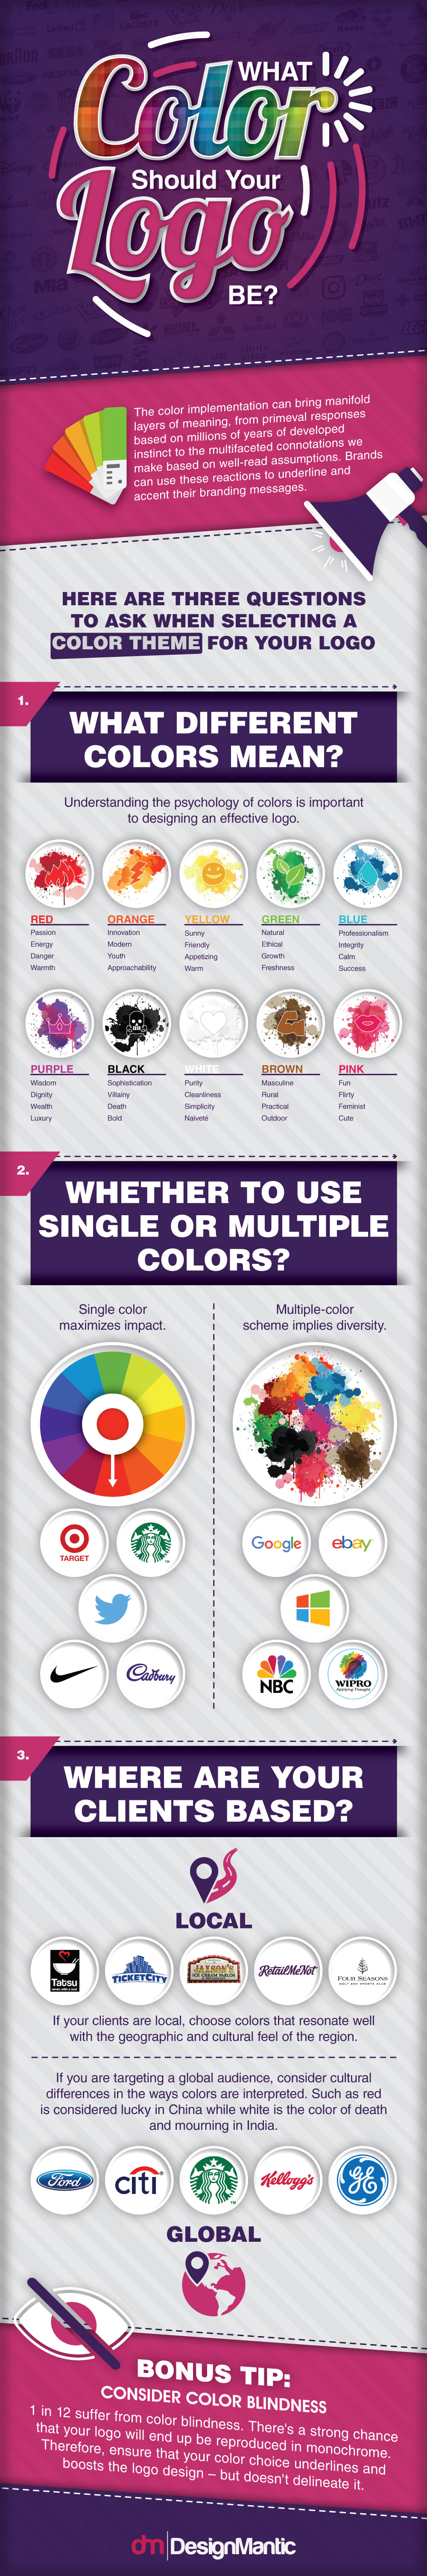 What Color Should Your Logo Design Be: 3 Questions To Ask!